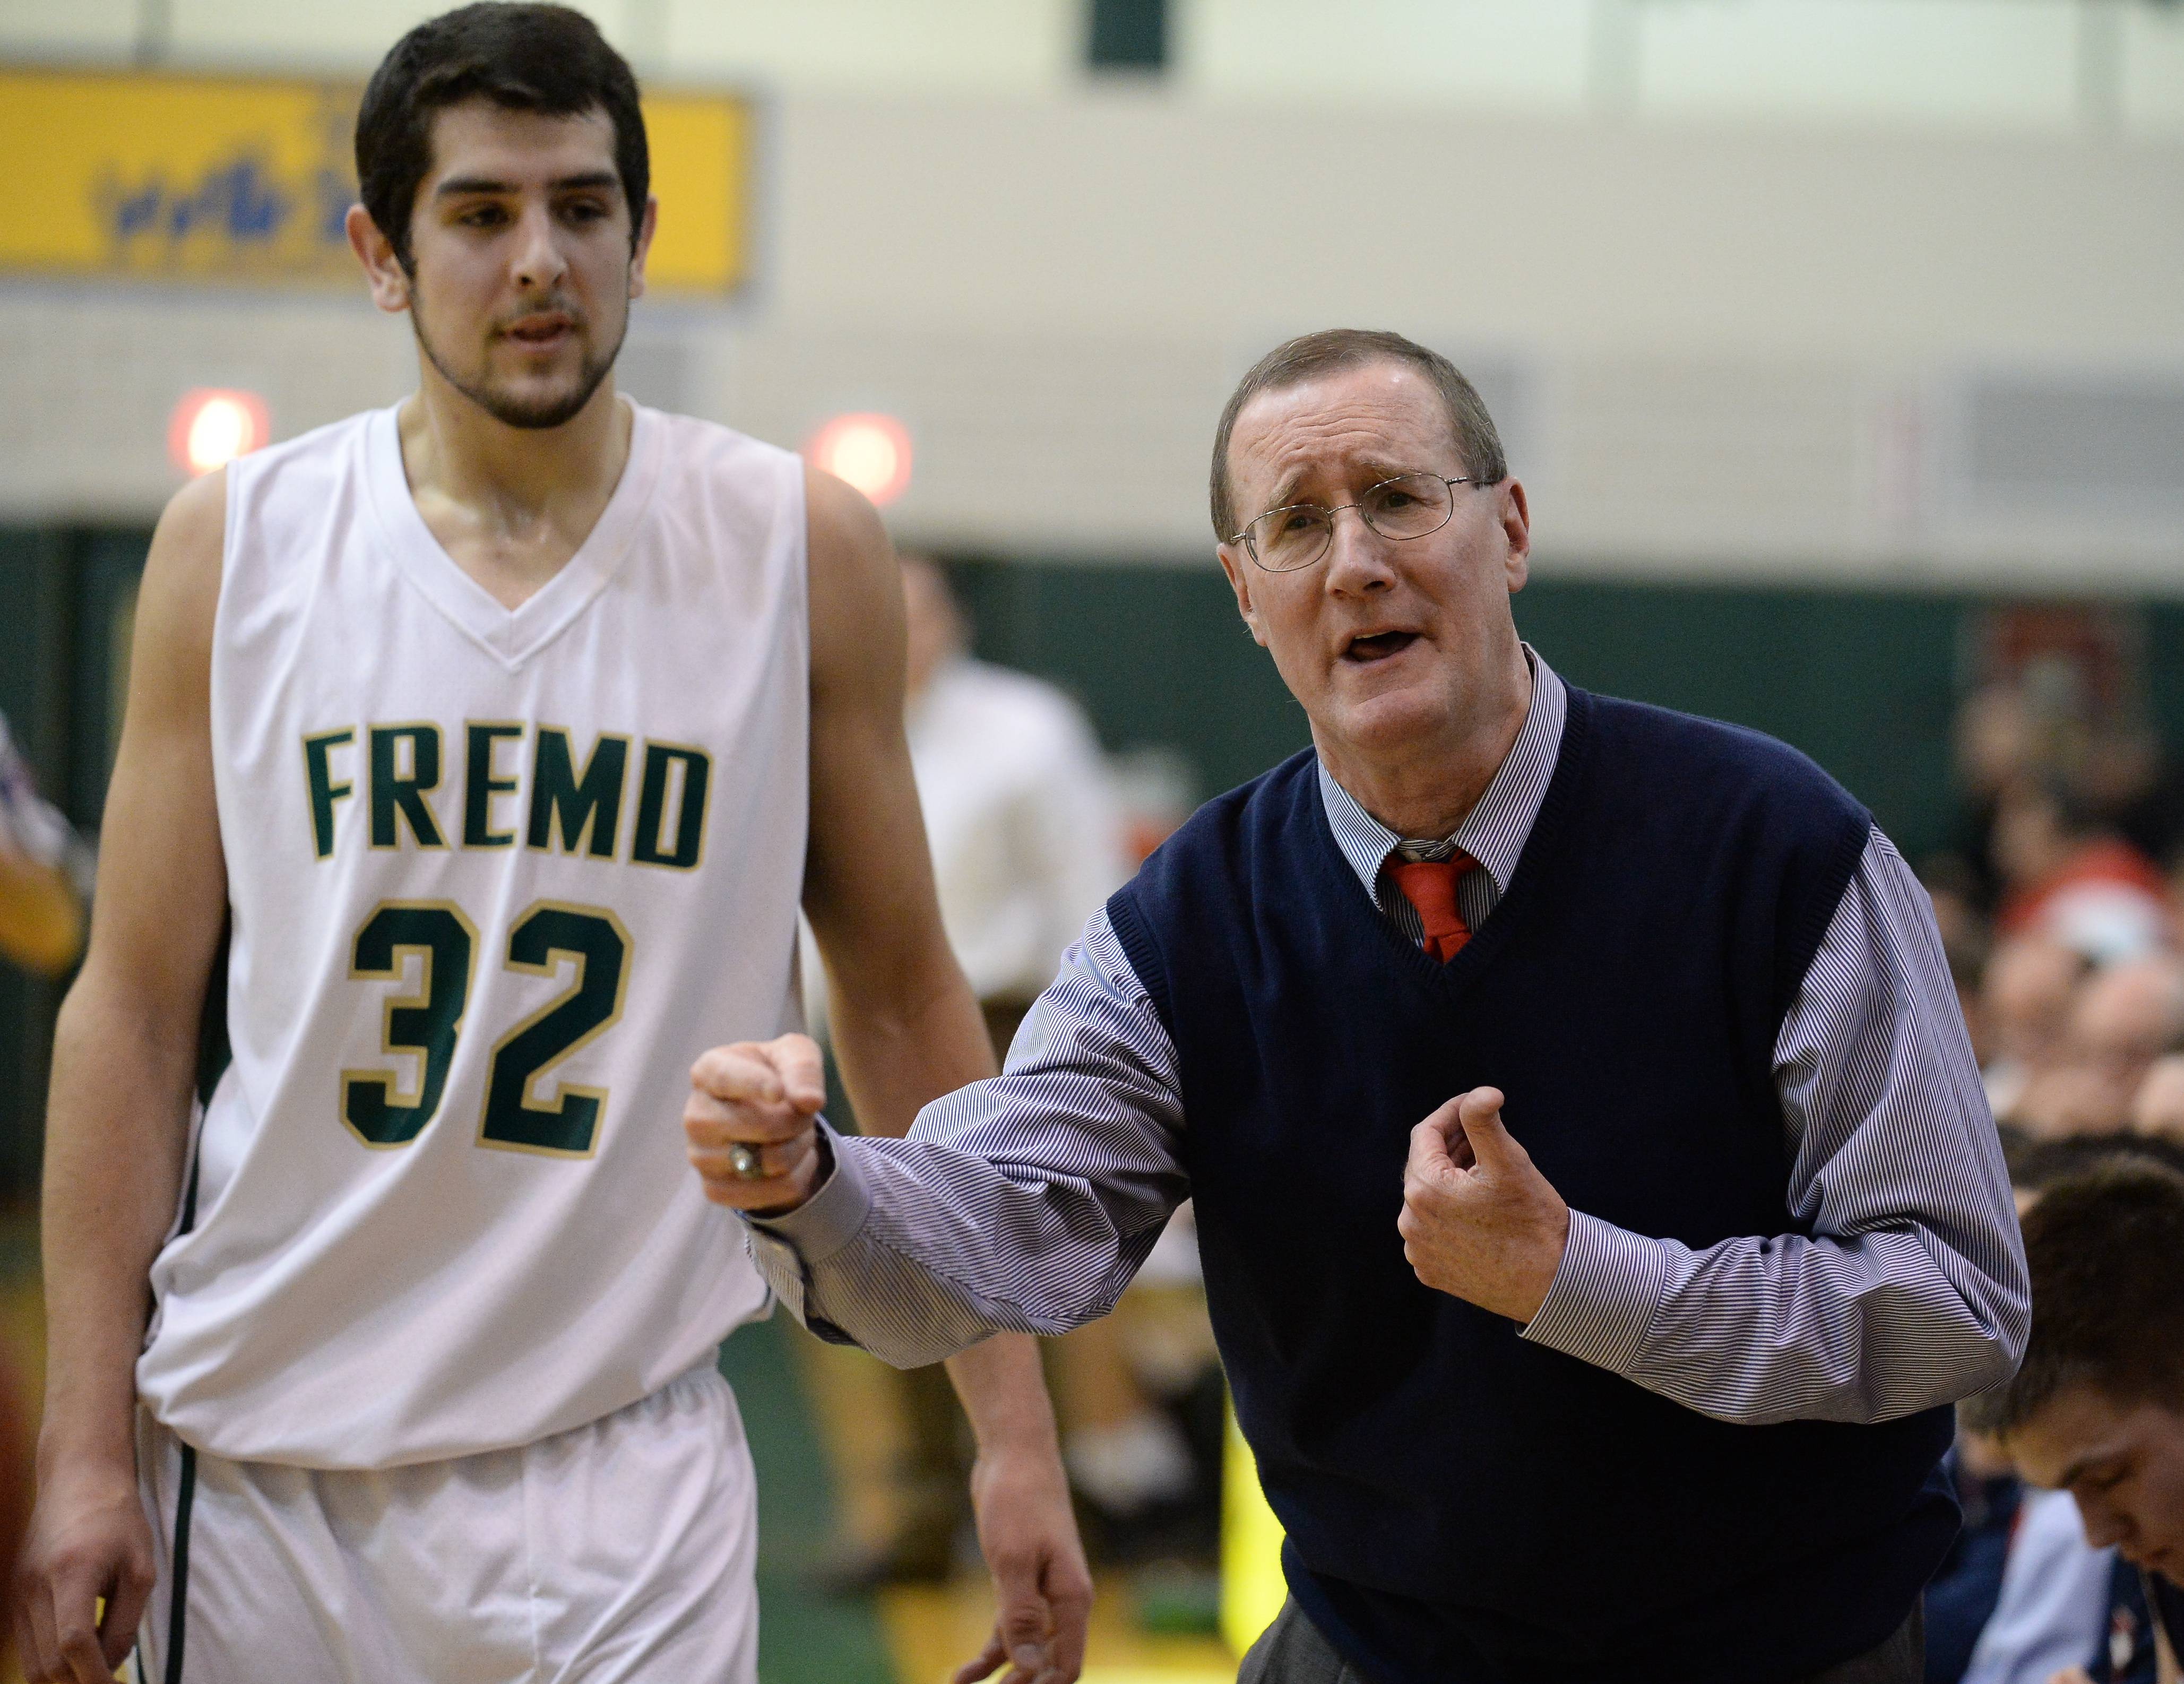 Images from Fremd vs. Conant in boys basketball, Friday, Feb. 14, 2014.